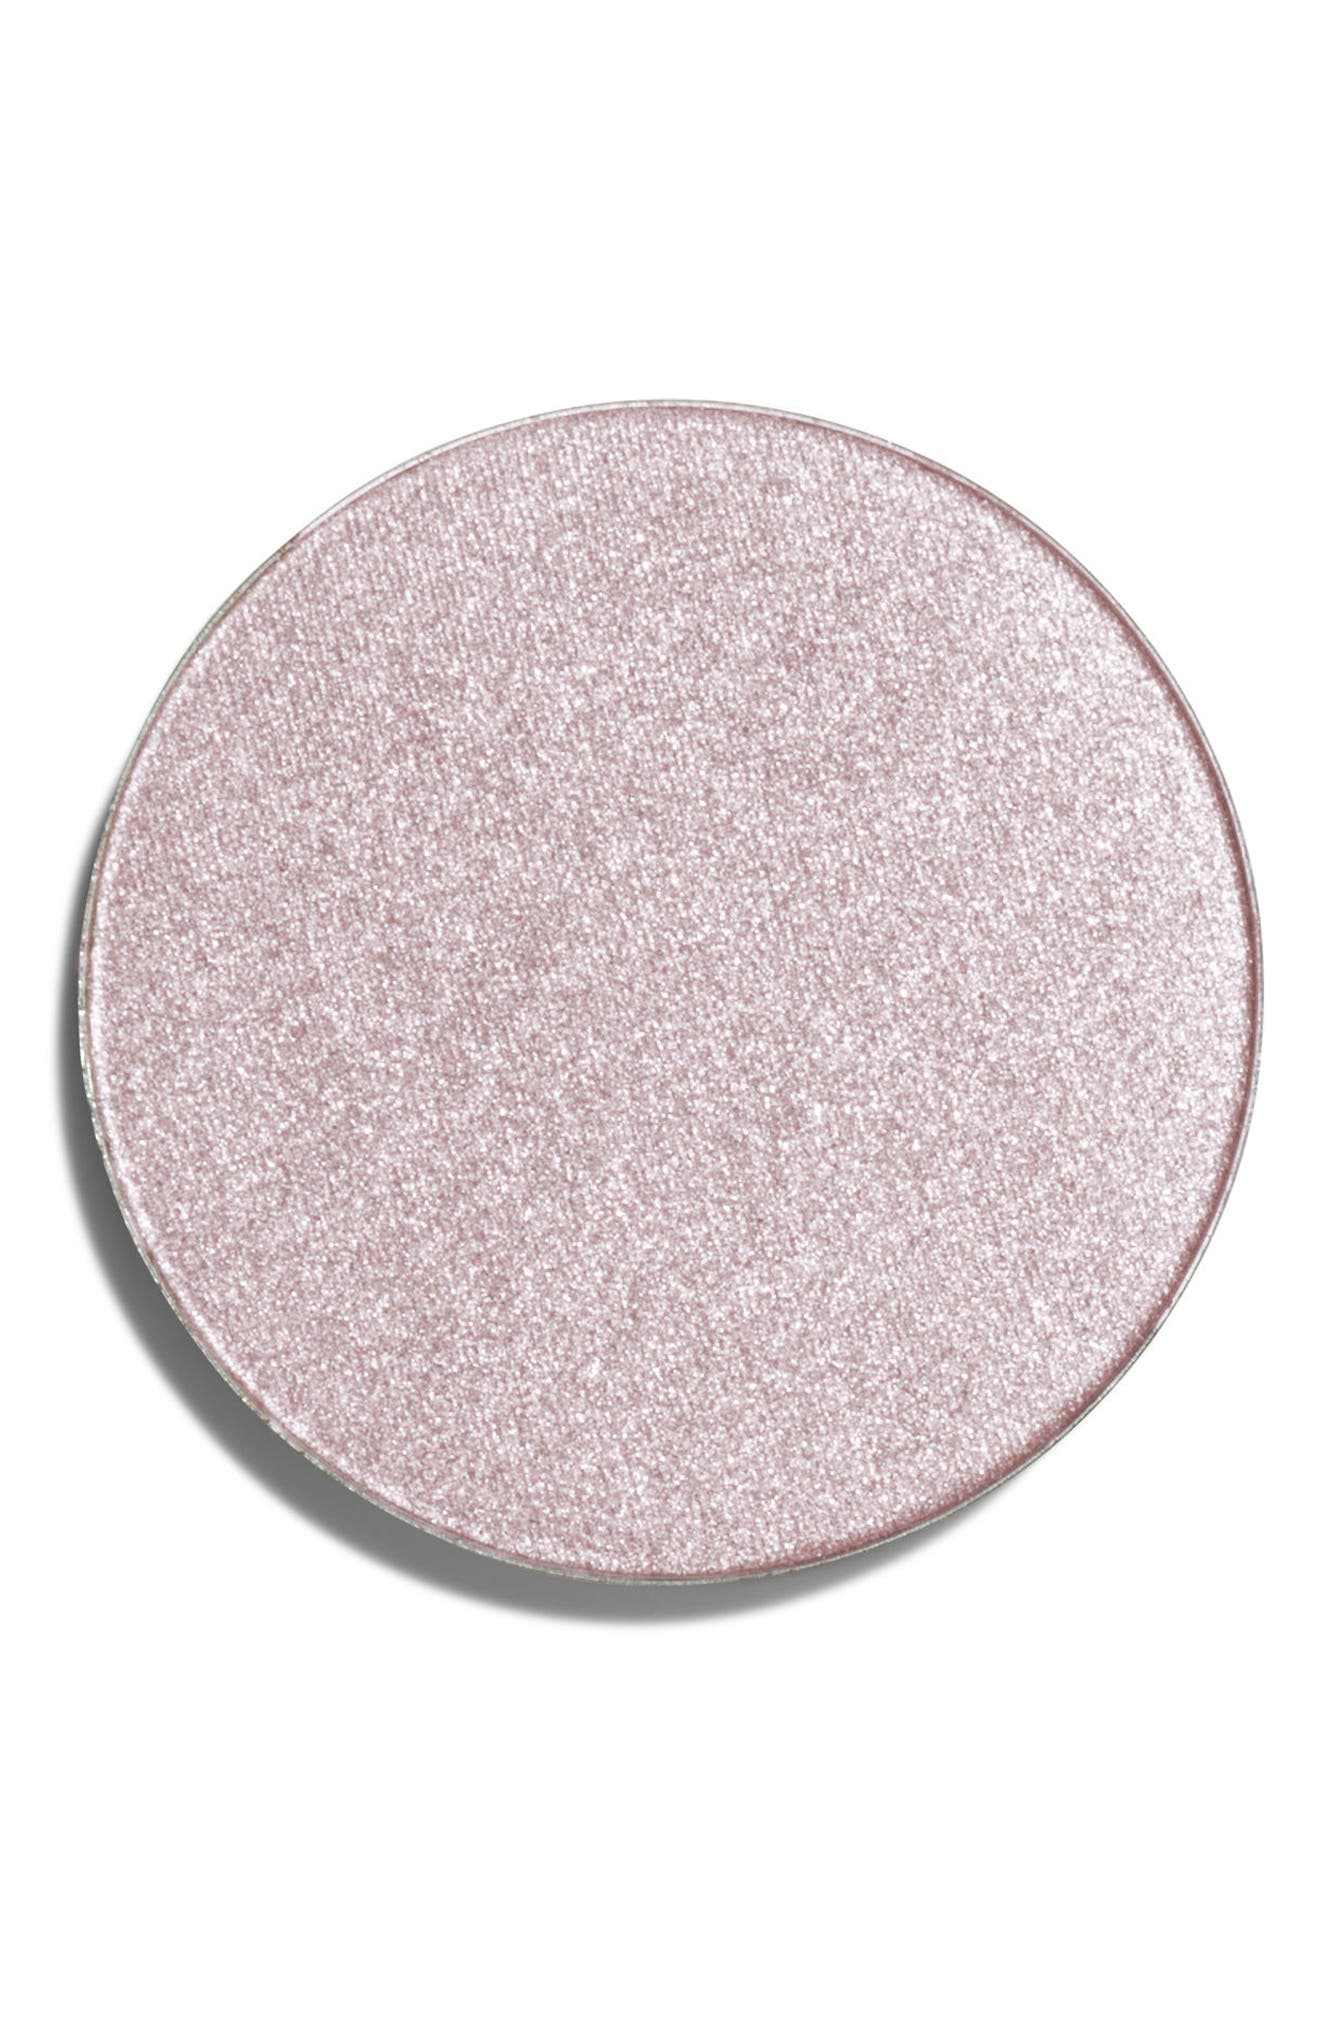 Iridescent Eye Shade Refill,                         Main,                         color, LILAC ROSE